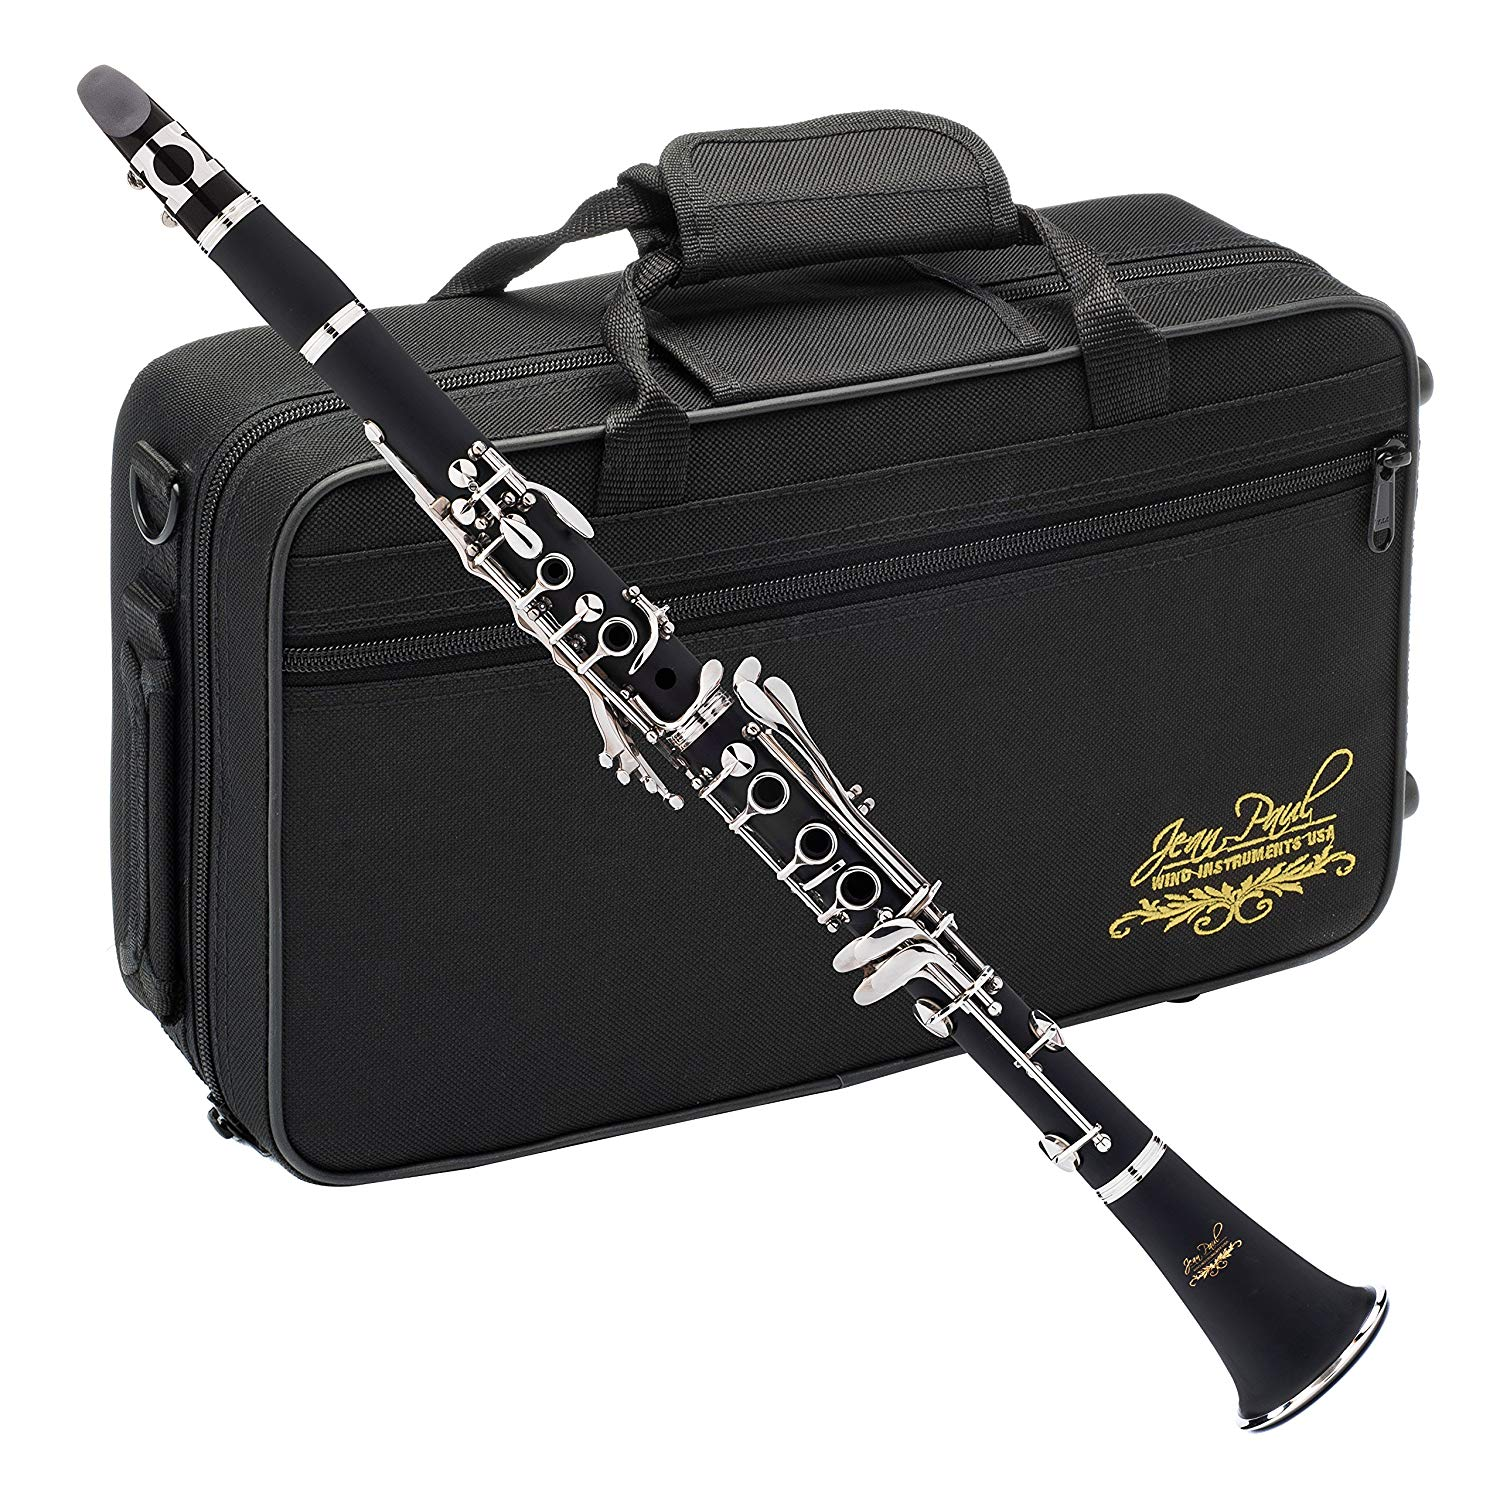 clarinet recommended for a student and intermediate players